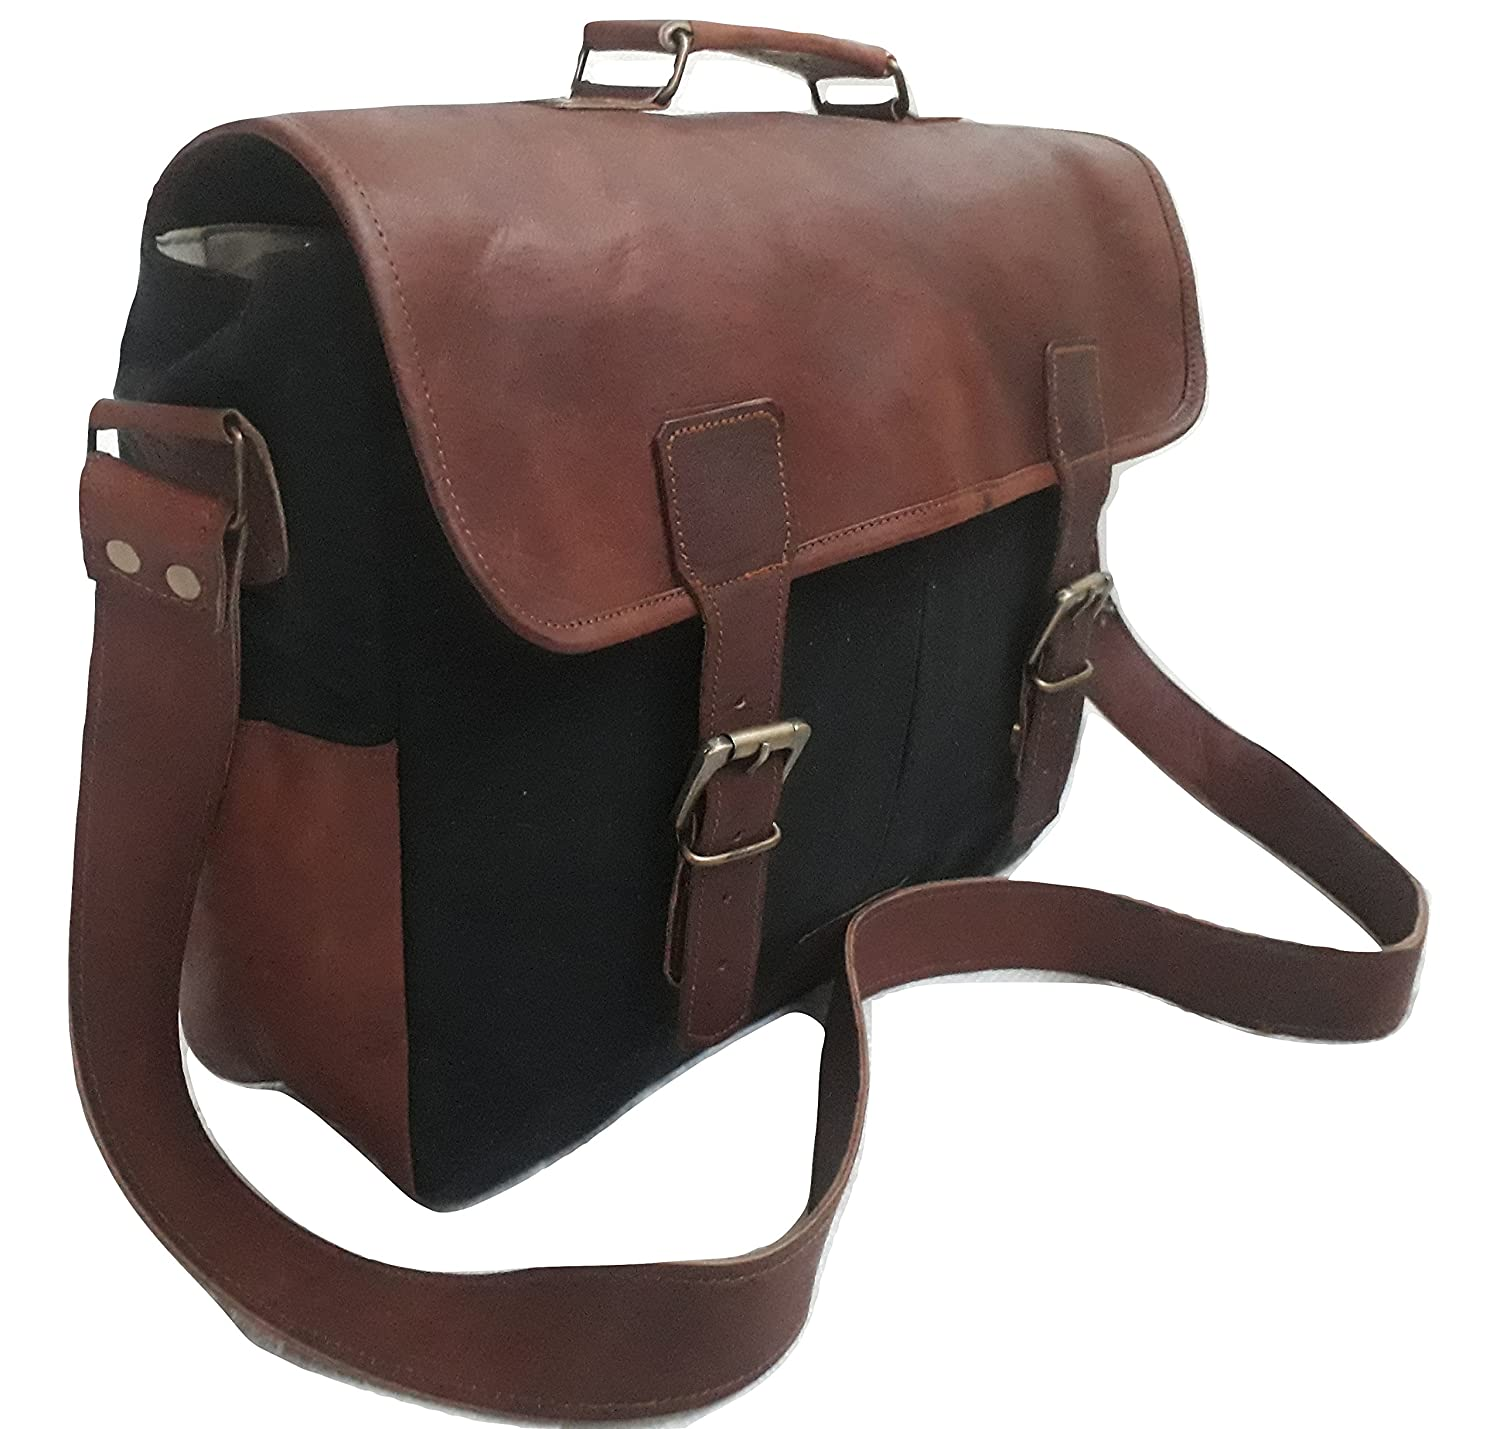 Messenger Satchel bag for men and women Vintage canvas real leather 14 inch Laptop Briefcase for everday use